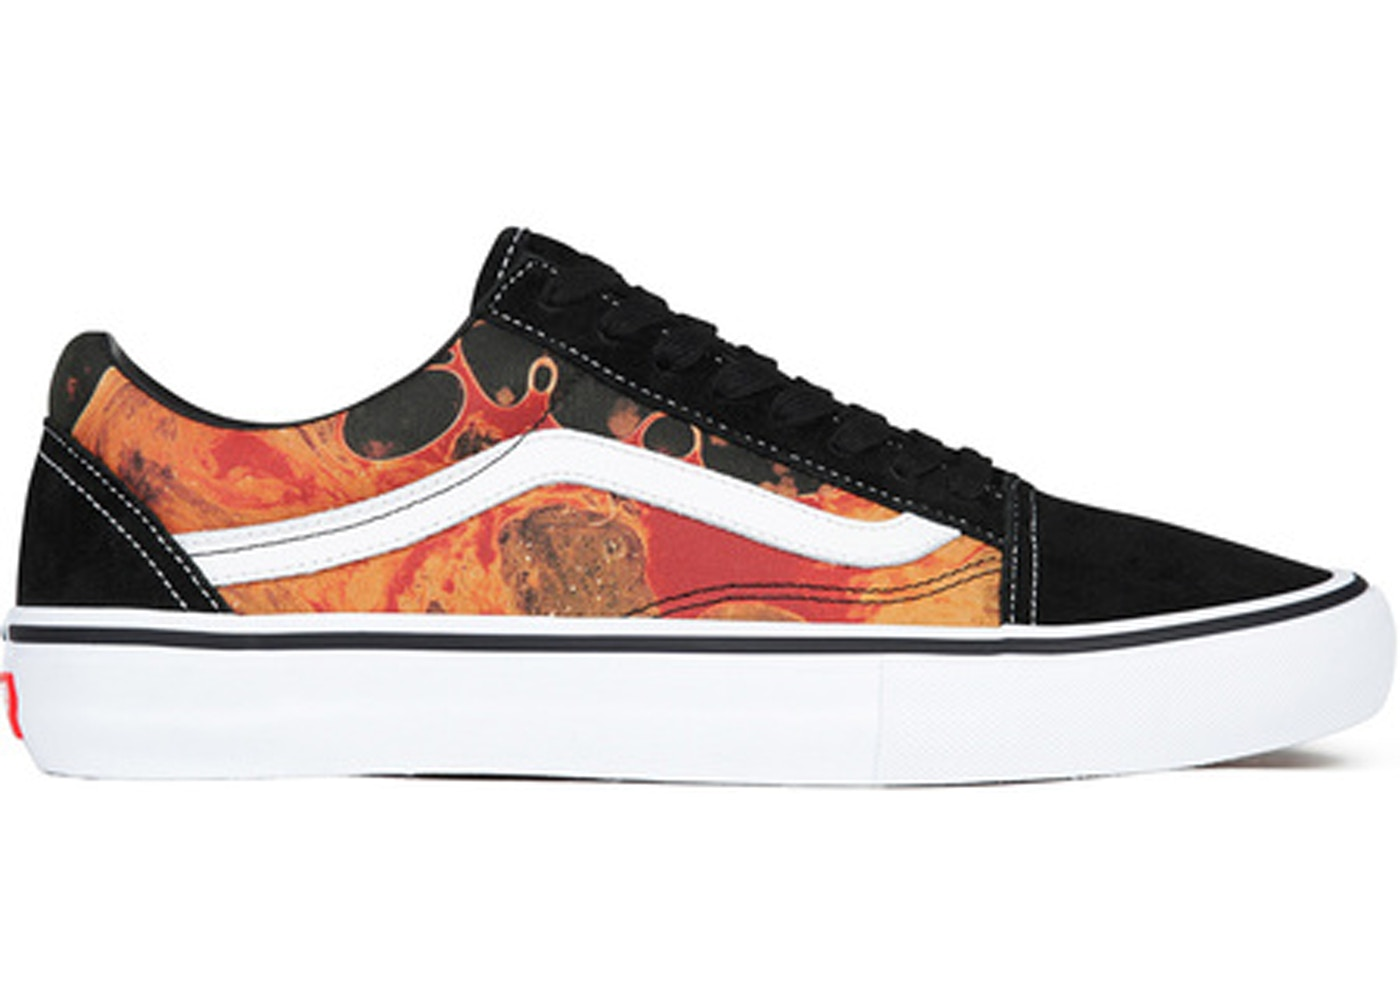 Vans Old Skool Supreme x Andres Serrano Blood and Semen II - VN000ZD4RZW e936eb75d